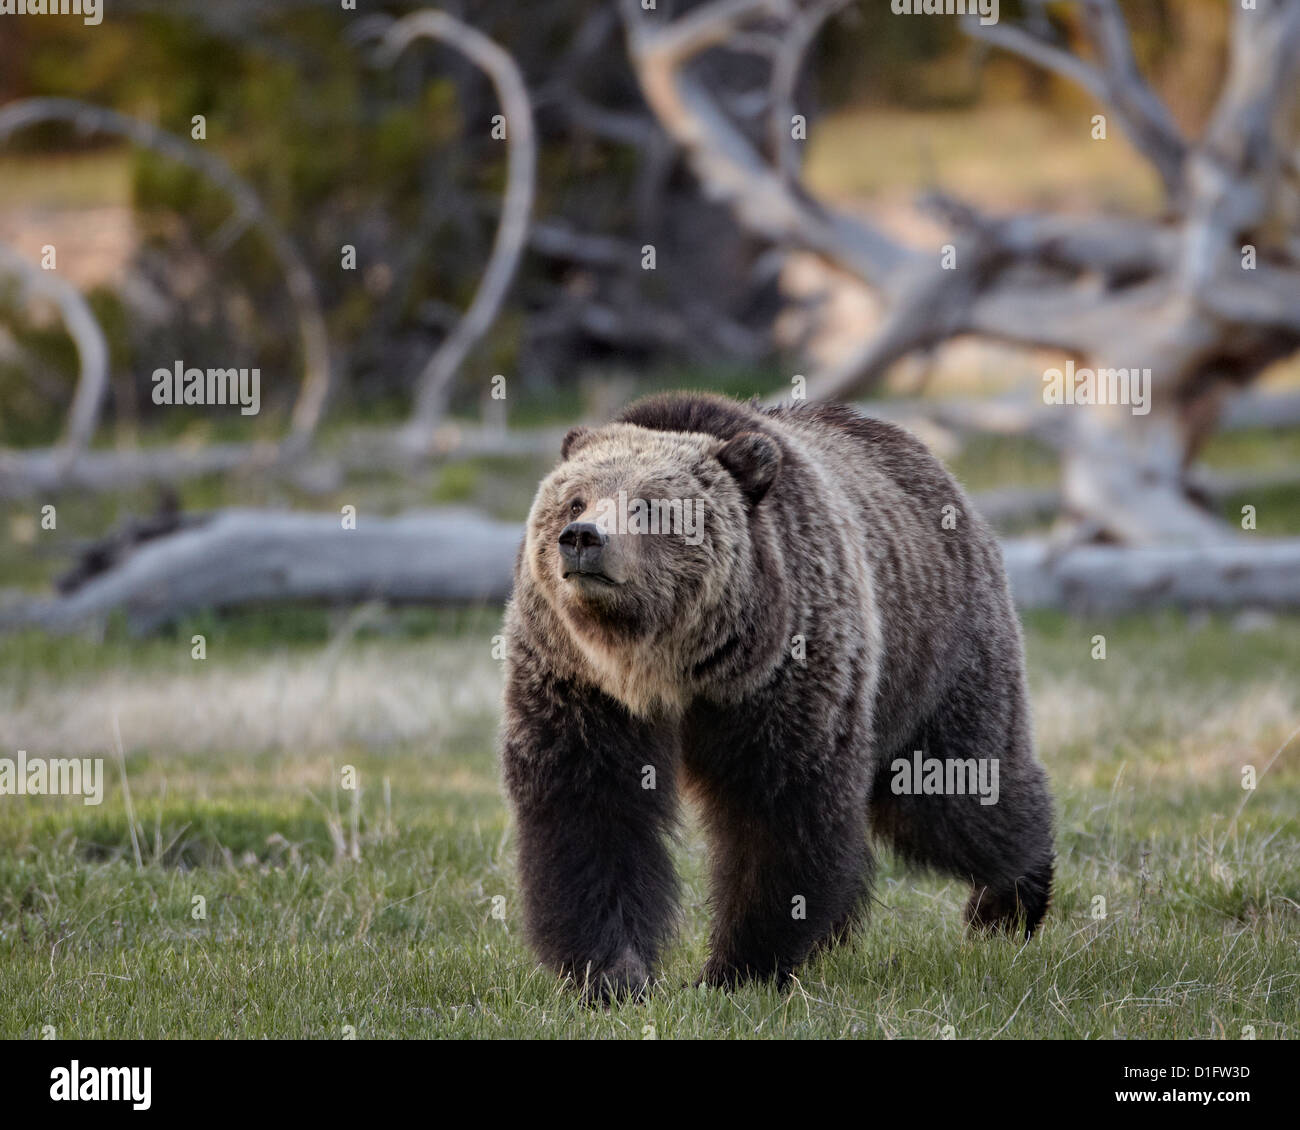 Grizzly bear (Ursus arctos horribilis) walking, Yellowstone National Park, Wyoming, United States of America, North - Stock Image